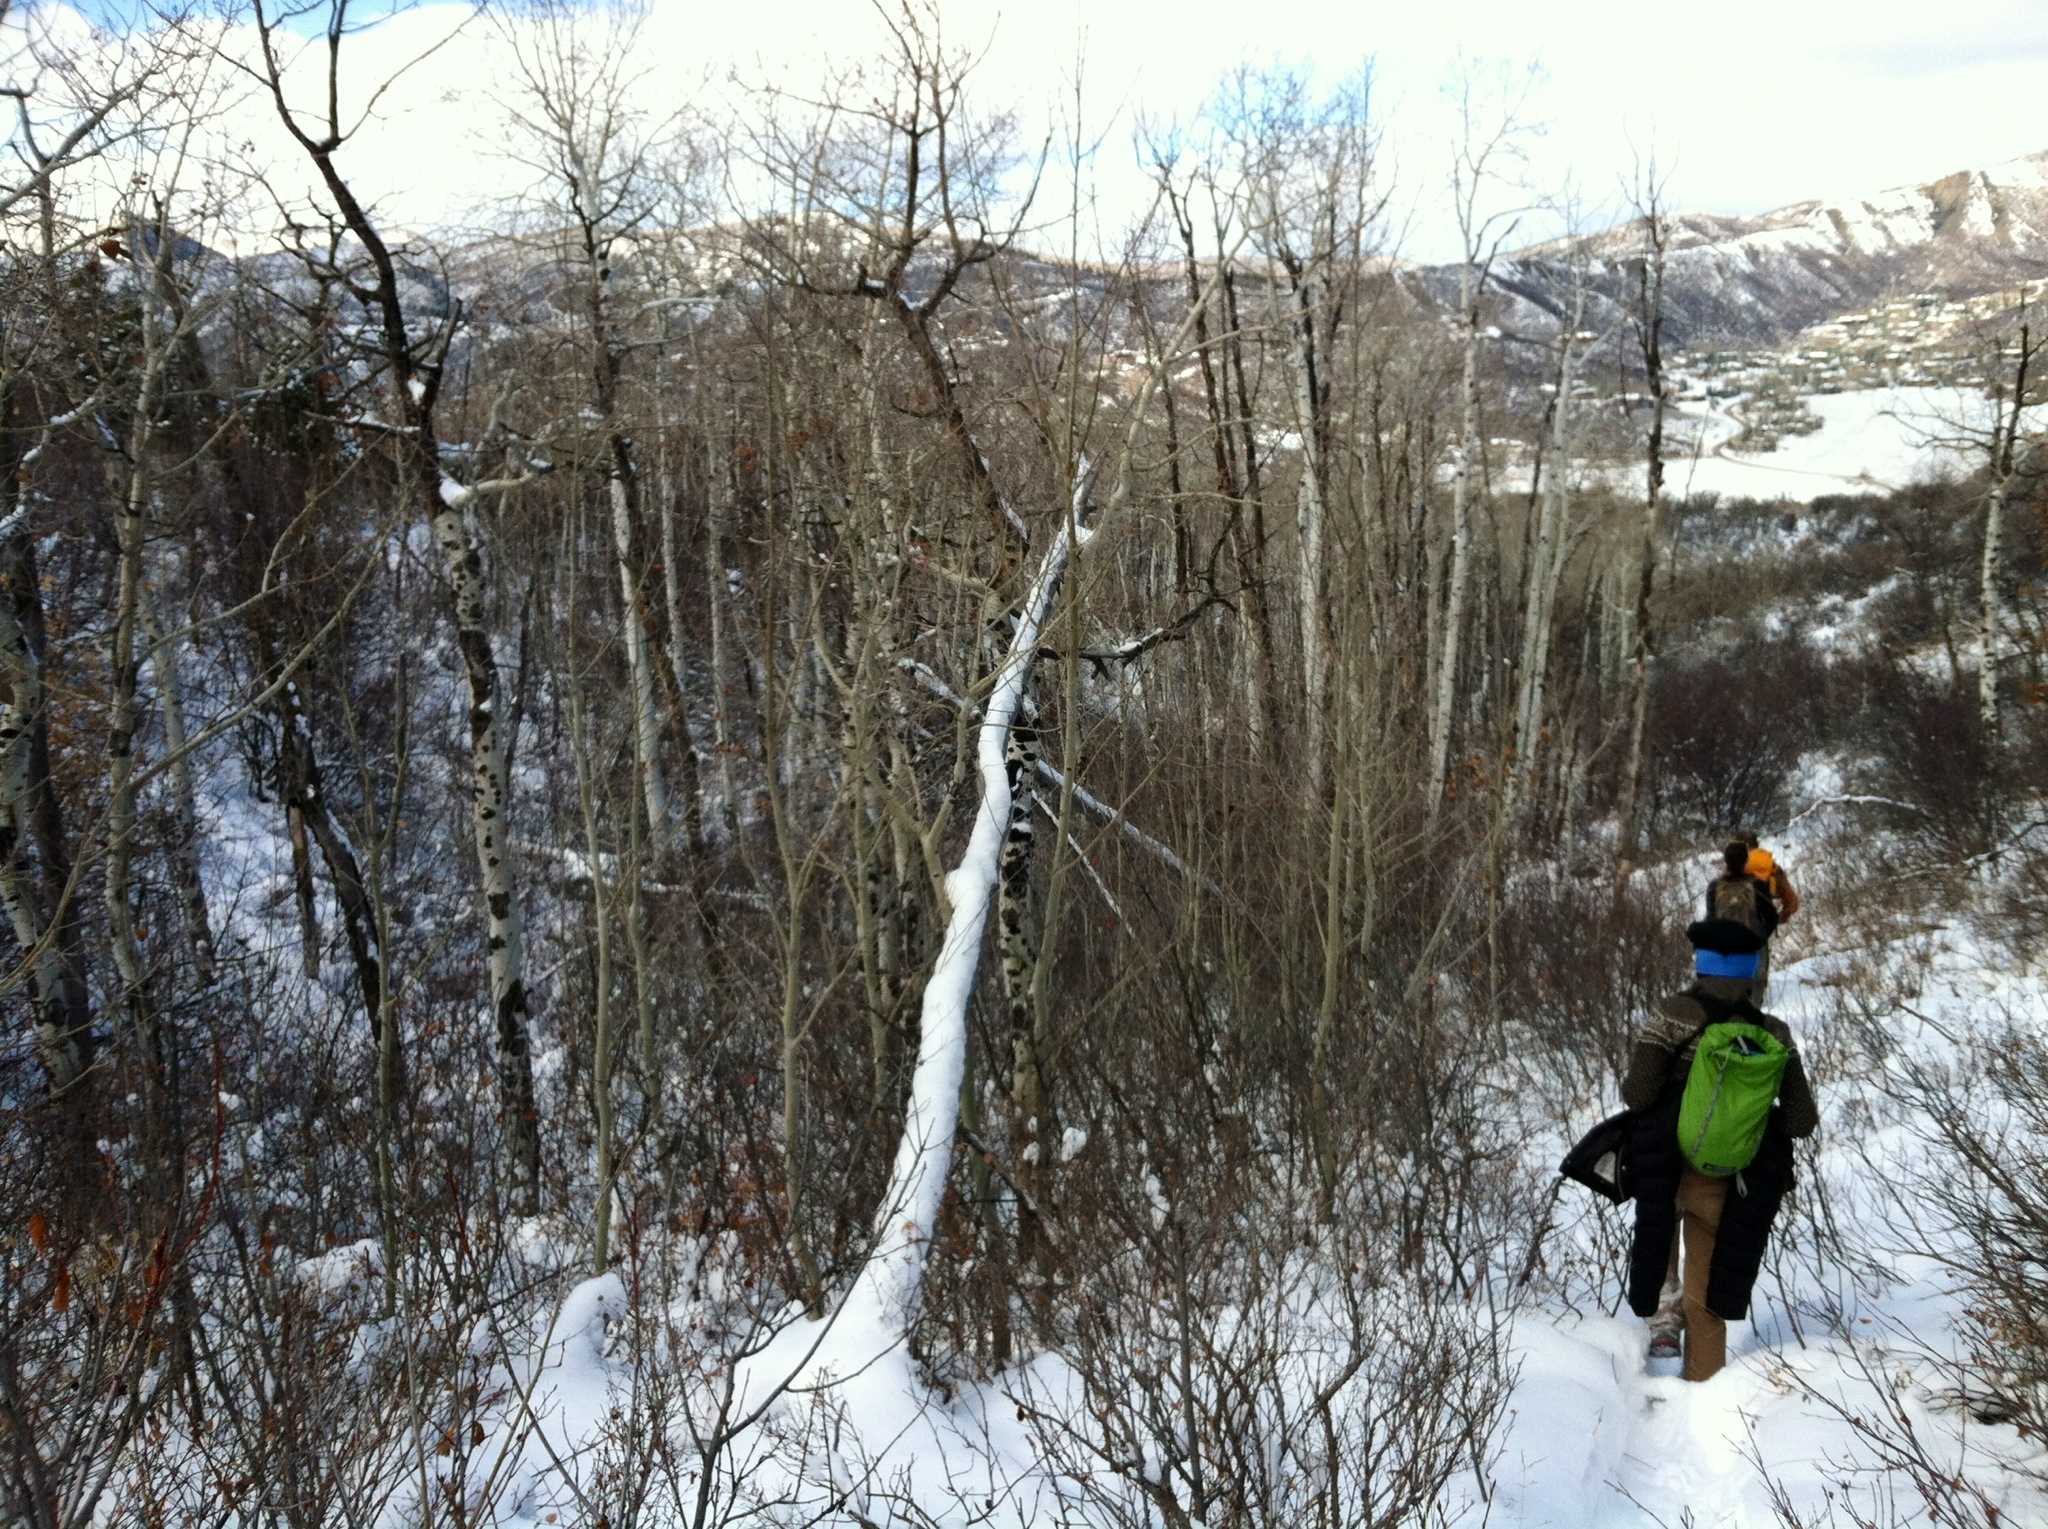 Scientists chose to erect a soil moisture monitoring tower in this aspen grove because it's in decline due to drought.